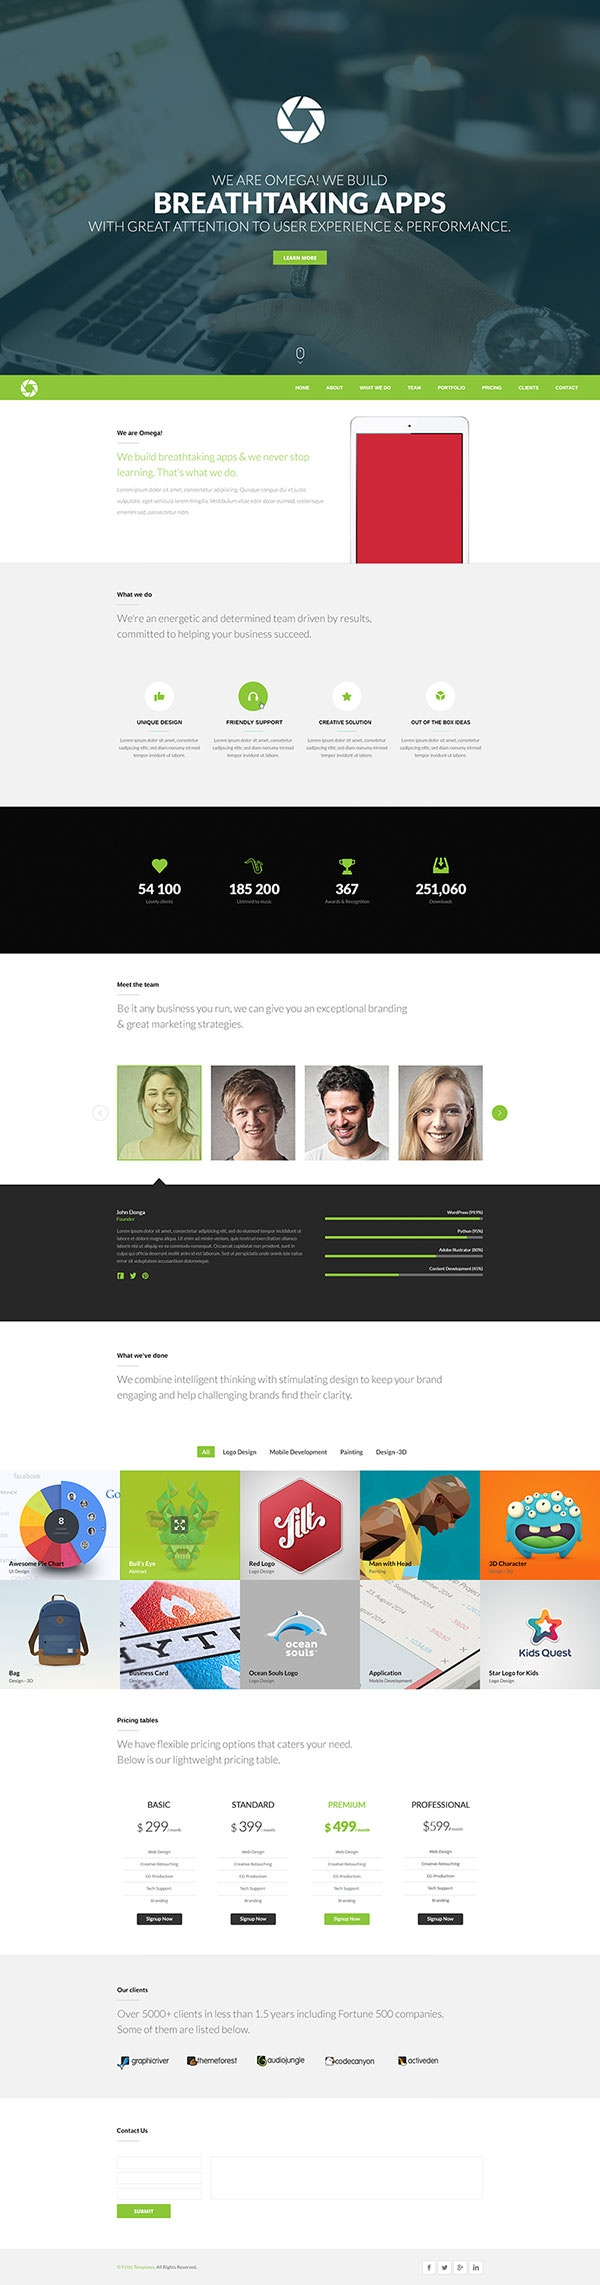 Free-One-Page-Website-Template-PSD-Piexls-Omega